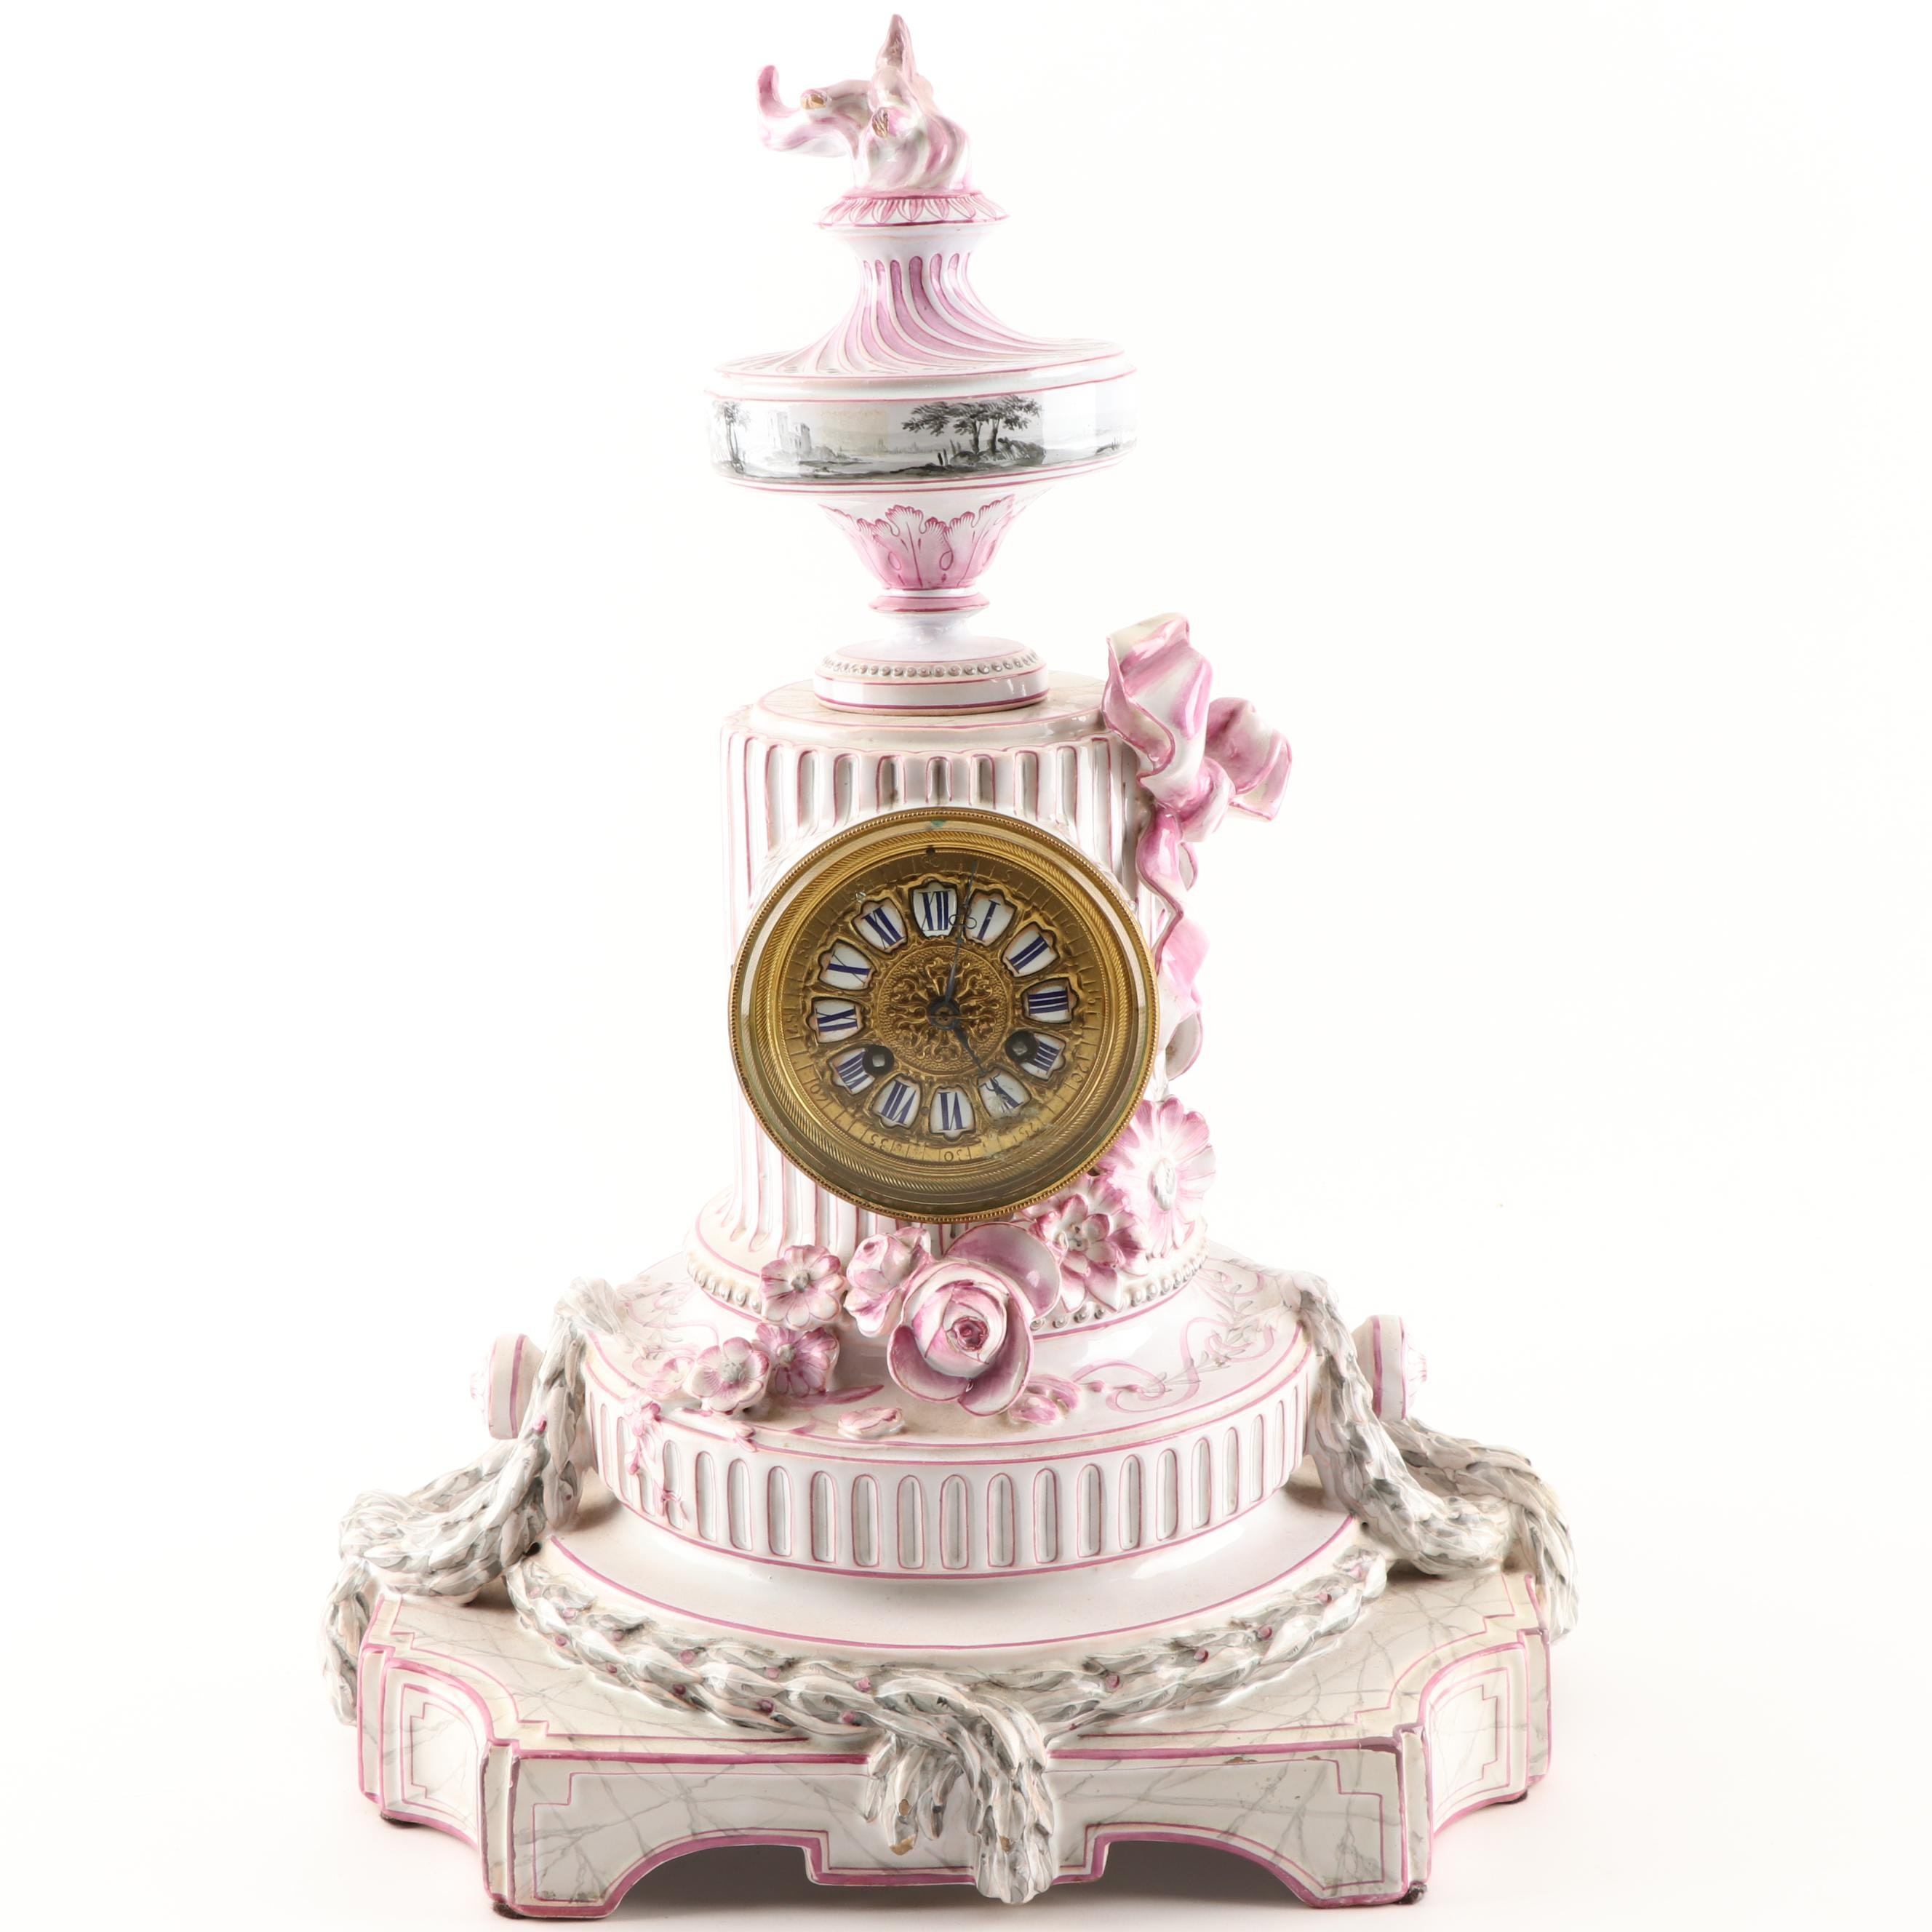 French Style Porcelain Faïence Mantel Clock, 19th Century